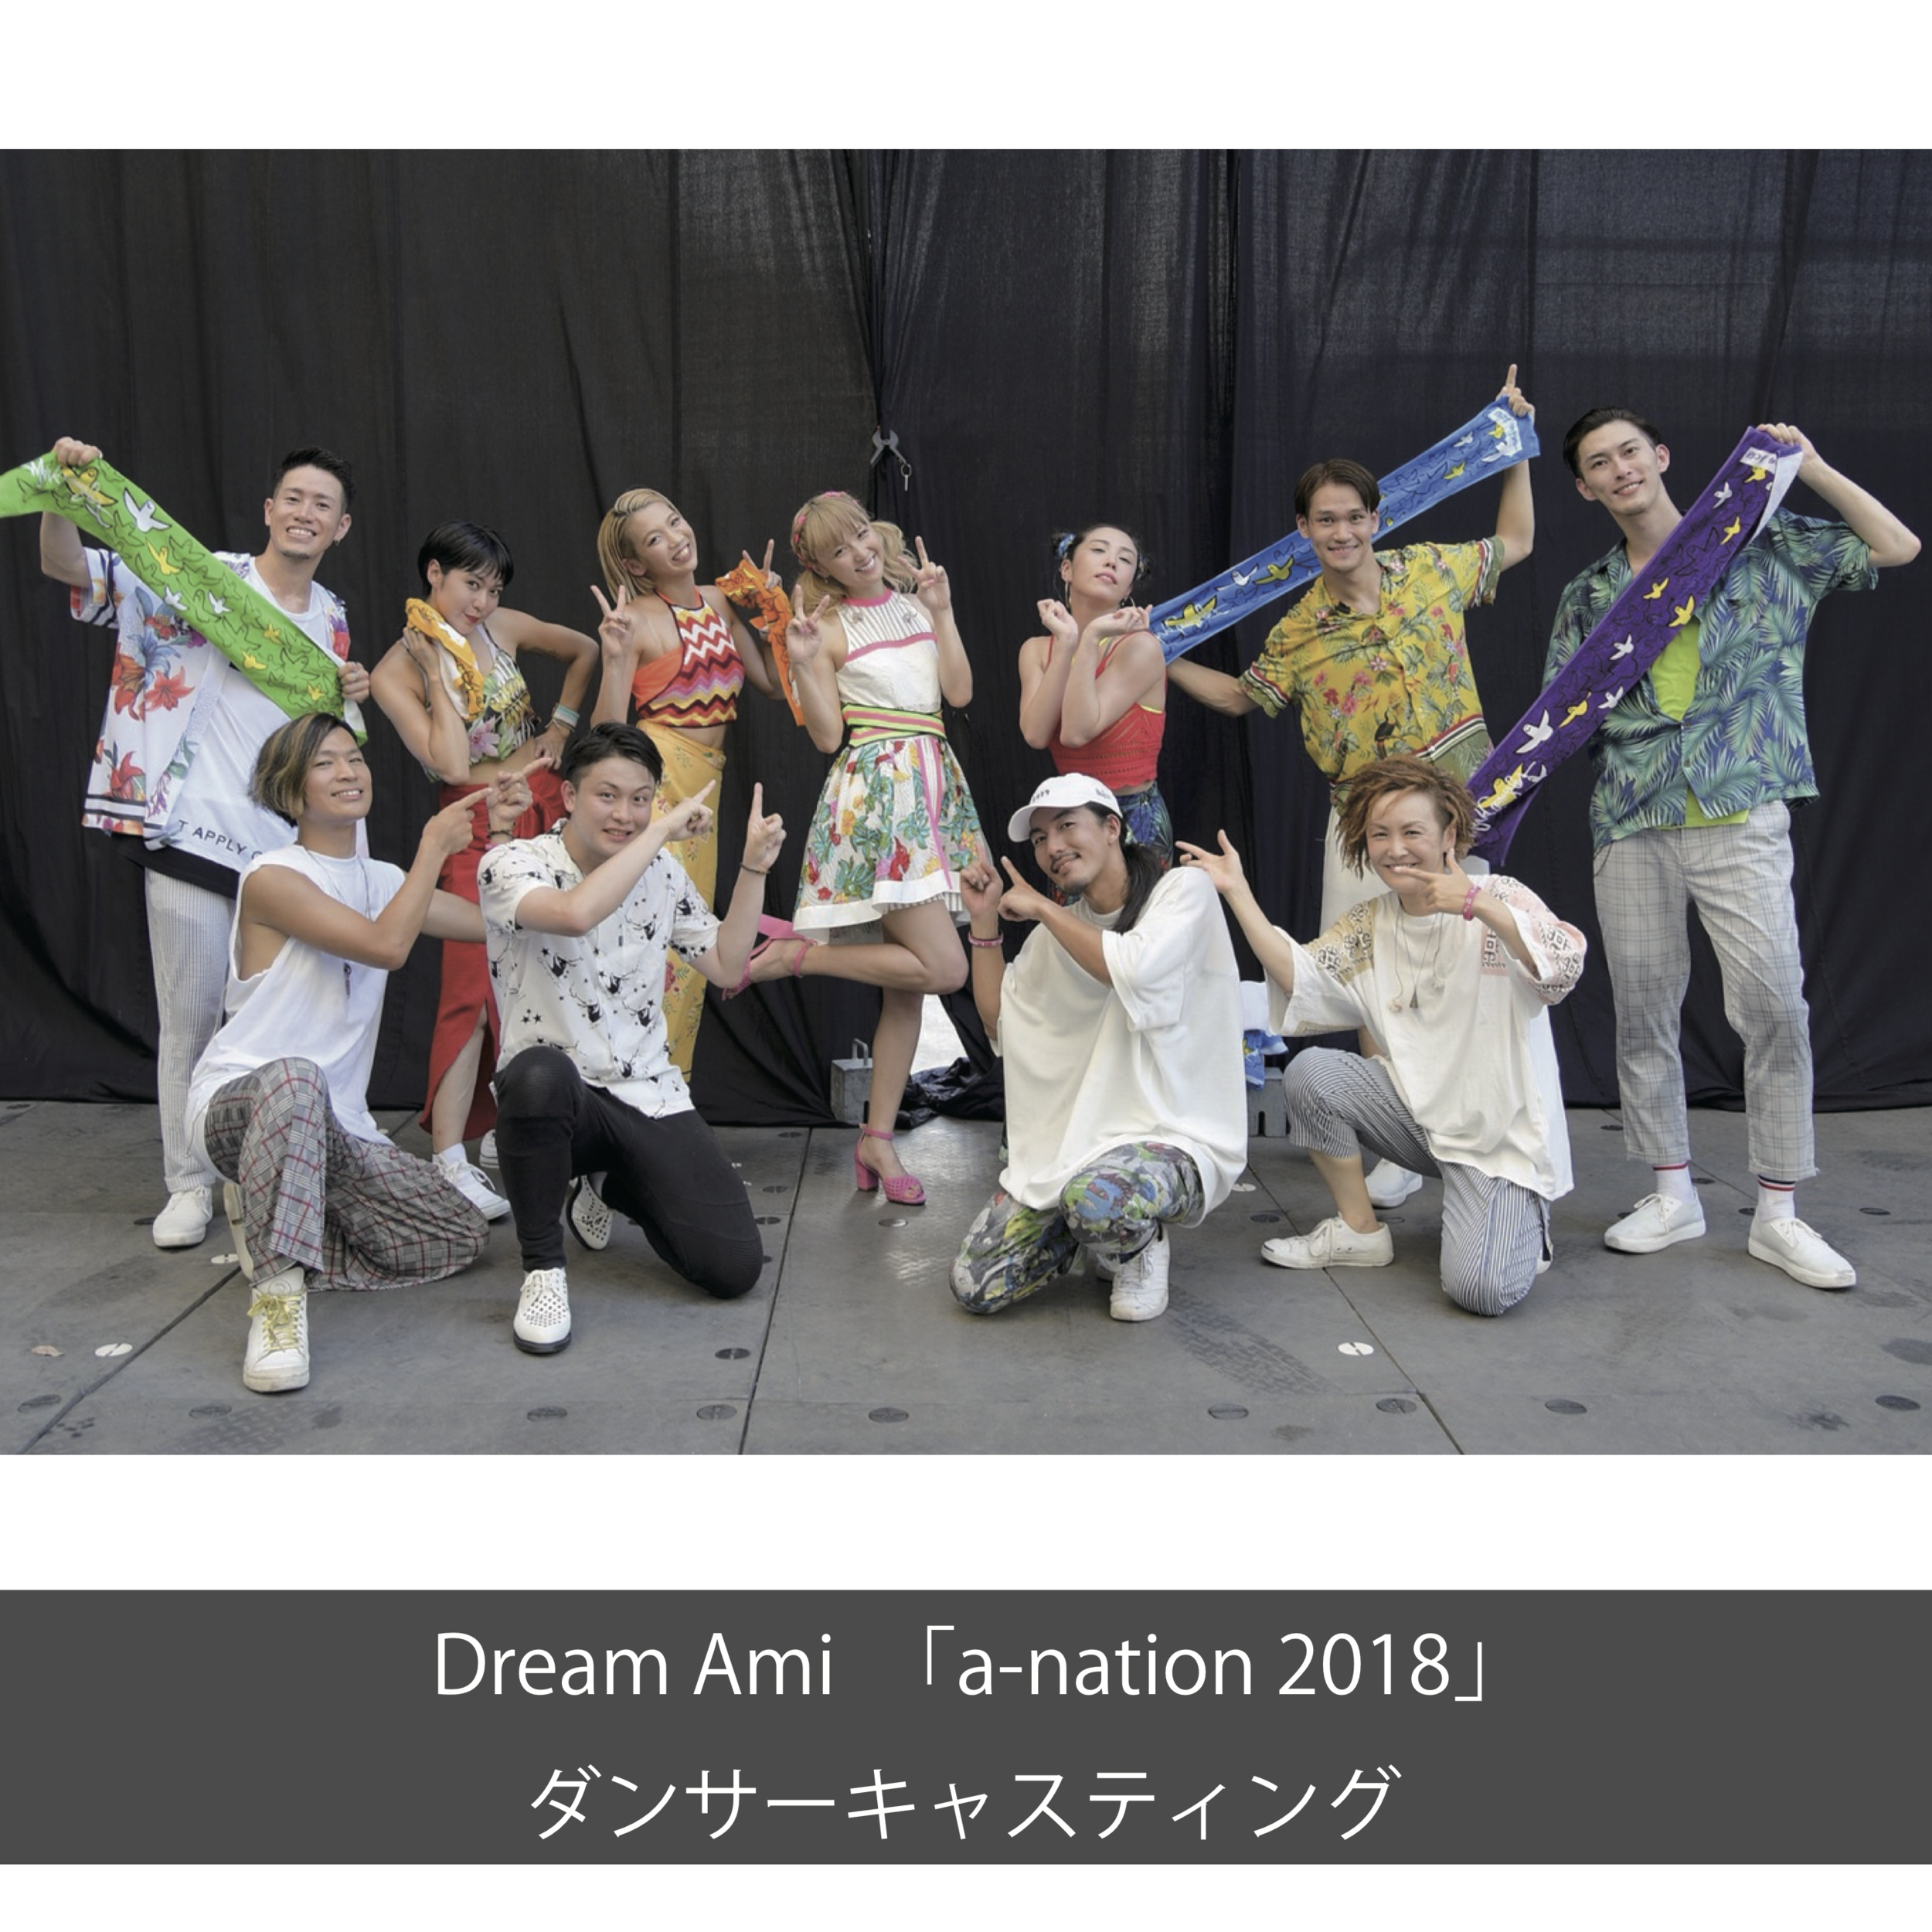 dream ami a-nation2018.png